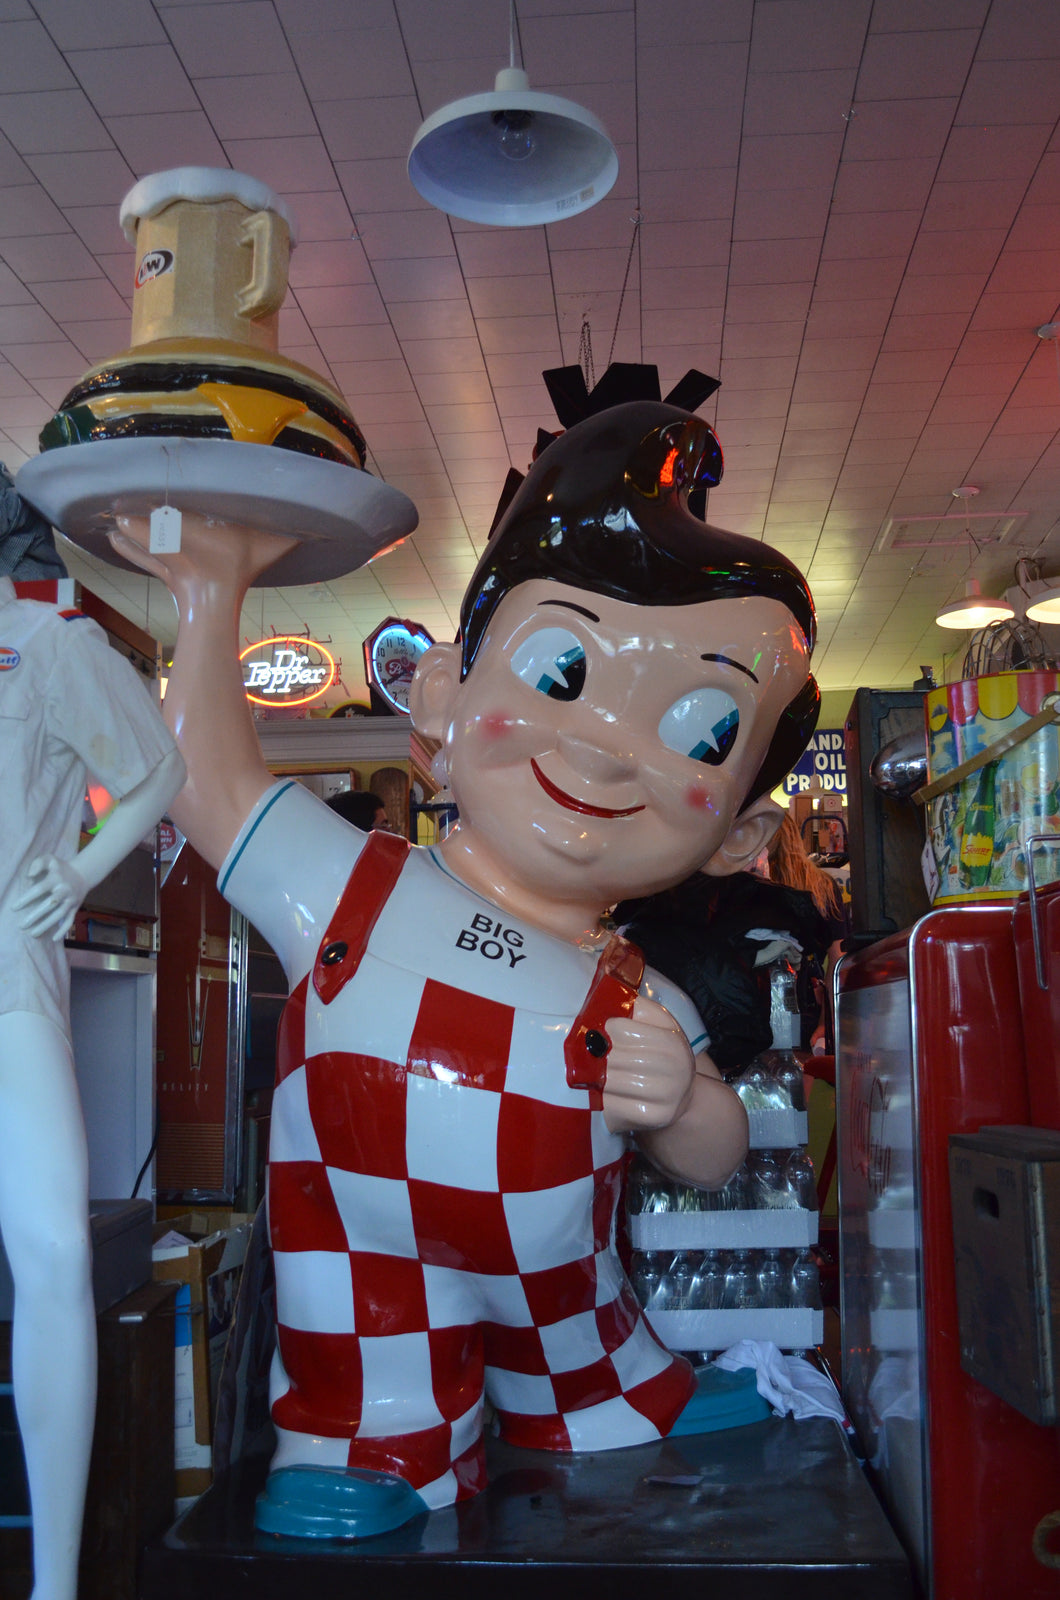 Authentic Big Boy Mascot